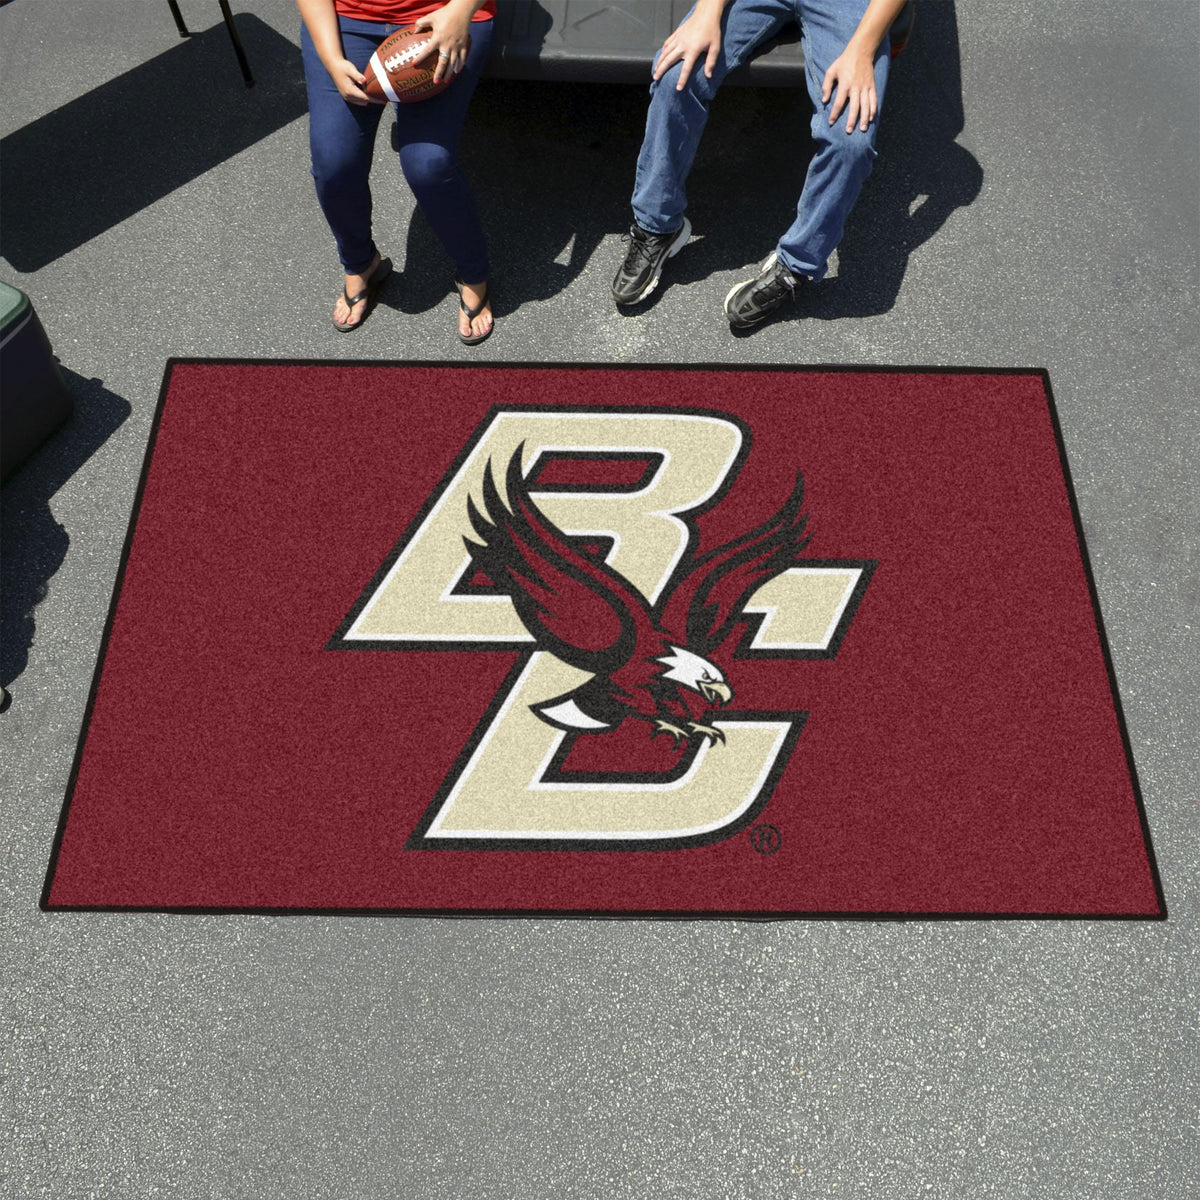 Collegiate - Ulti-Mat: A - L Collegiate Mats, Rectangular Mats, Ulti-Mat, Collegiate, Home Fan Mats Boston College